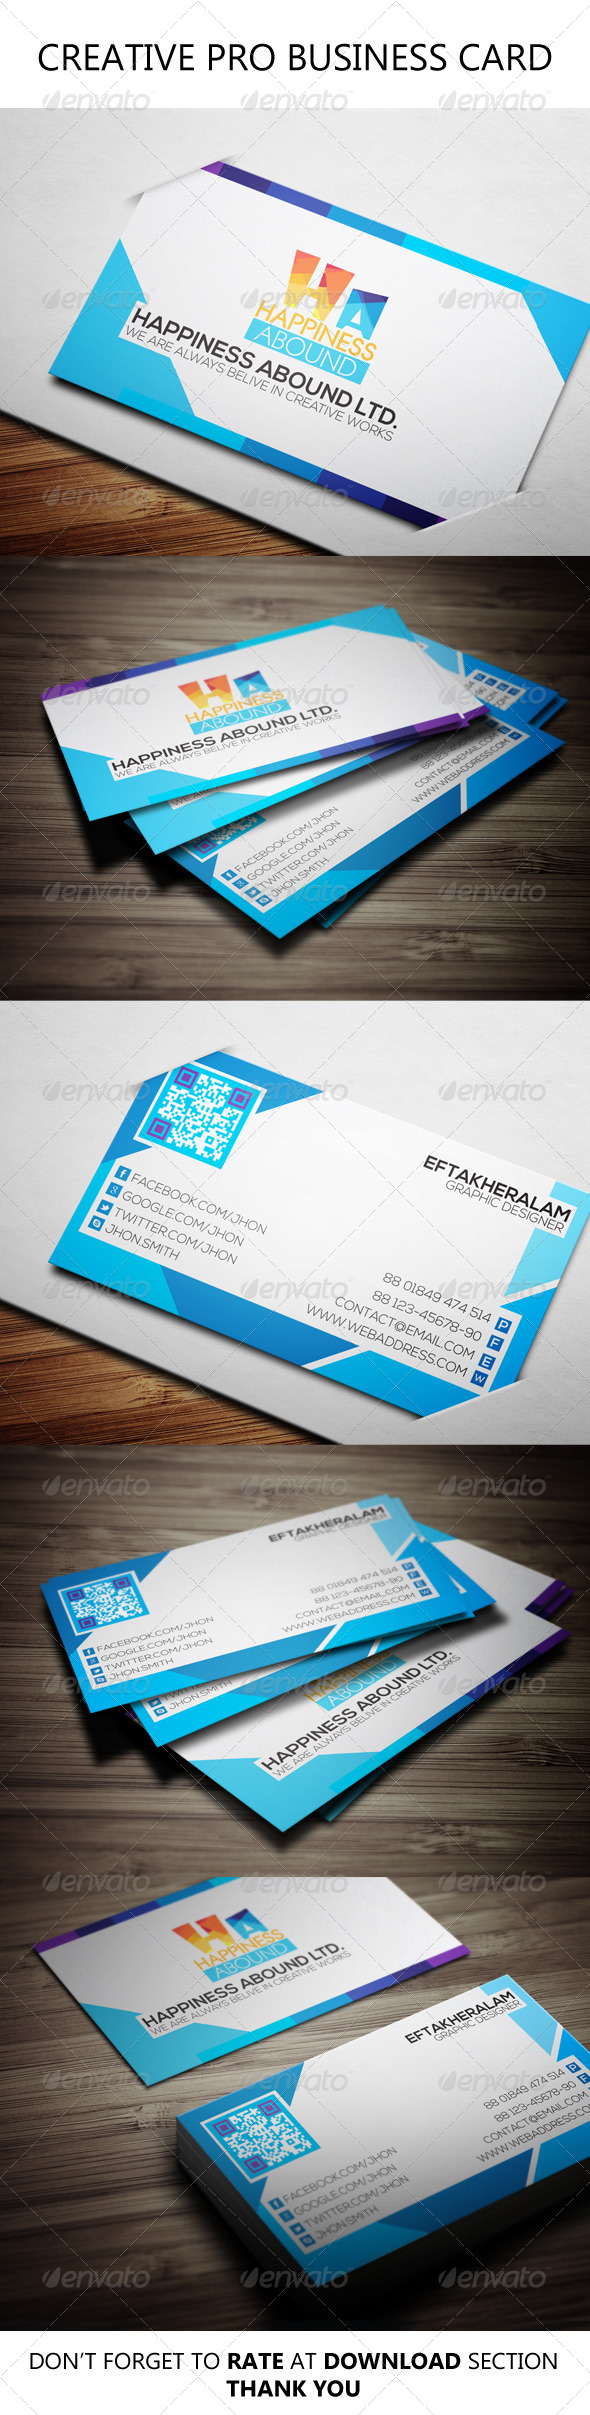 GraphicRiver Creative Pro Business Card 6481778